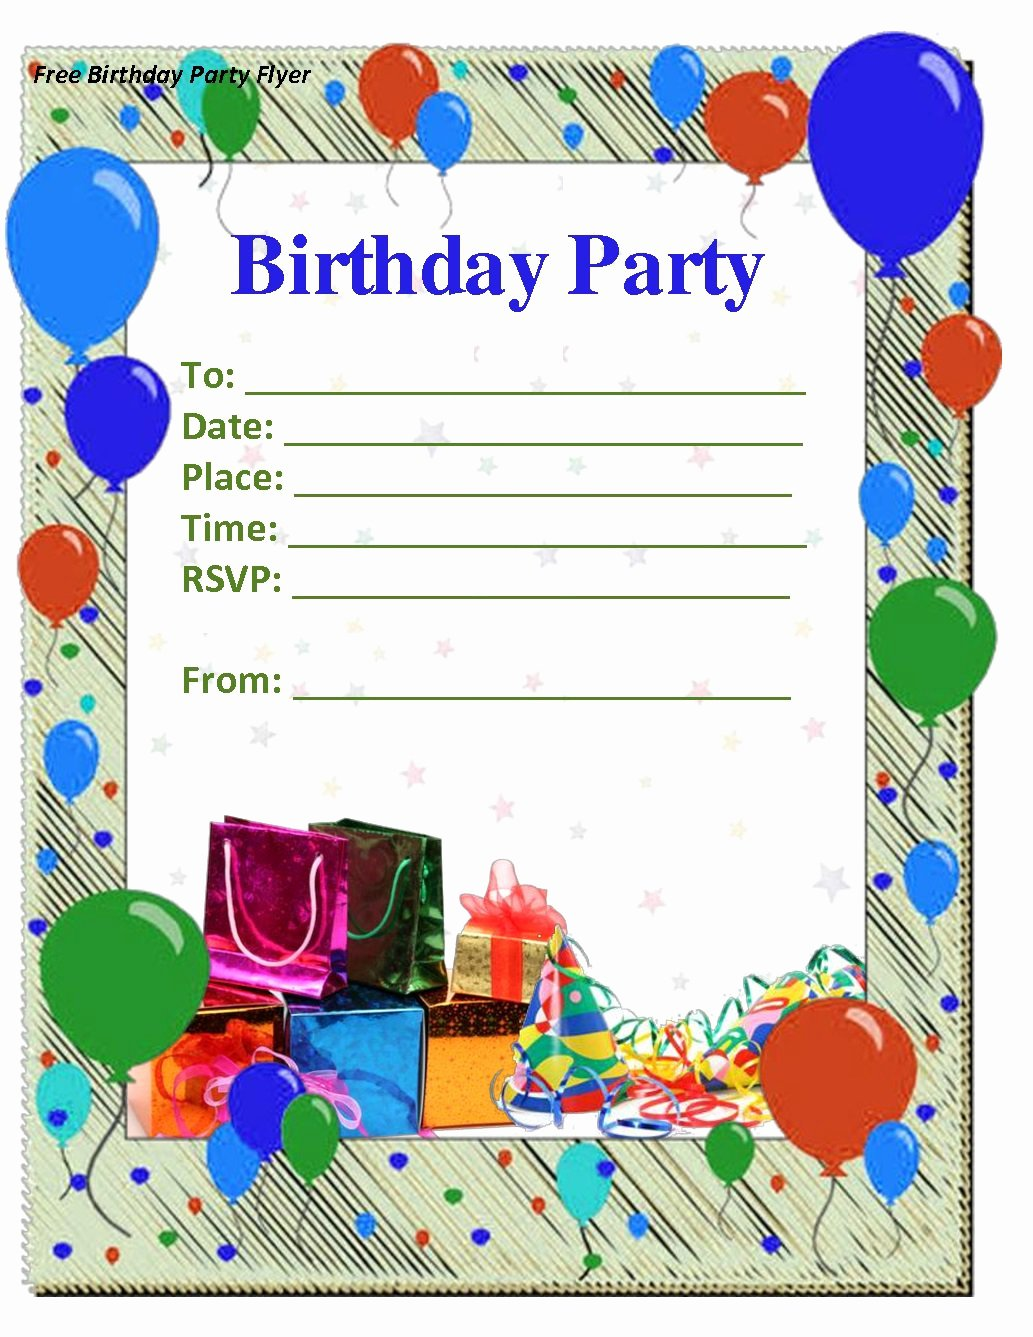 Birthday Invitation Templates Word Inspirational Birthday Invitations Templates Word